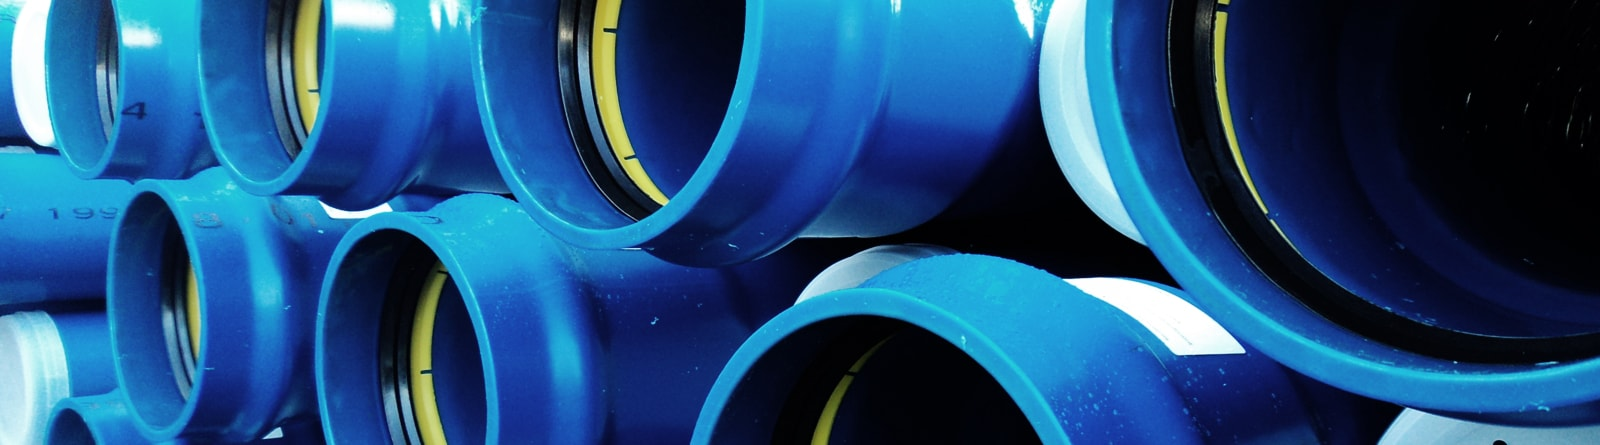 Sealing Systems for Potable Water Pipes